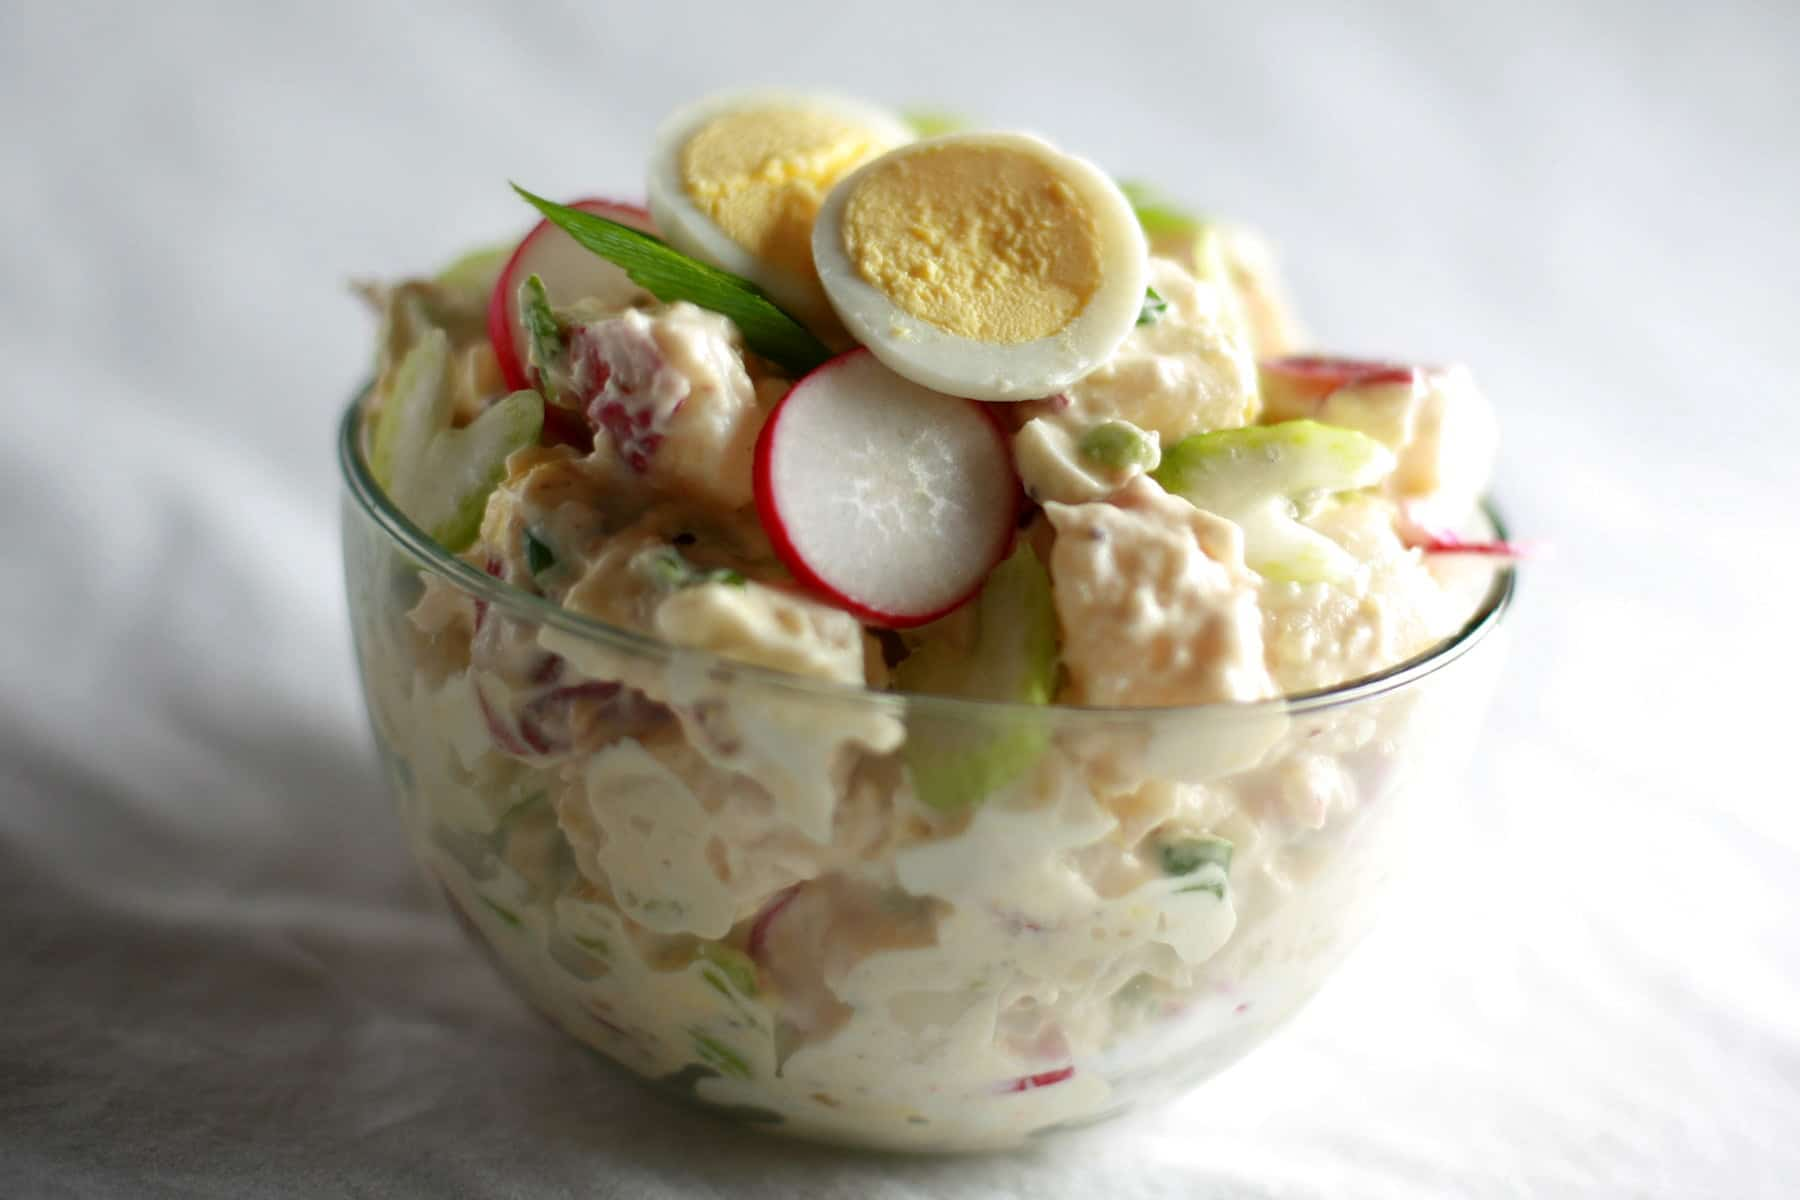 A bowl of Gramma's Potato Salad - a creamy potato salad with slices of celery, radish, green onion, and hardboiled egg visible.